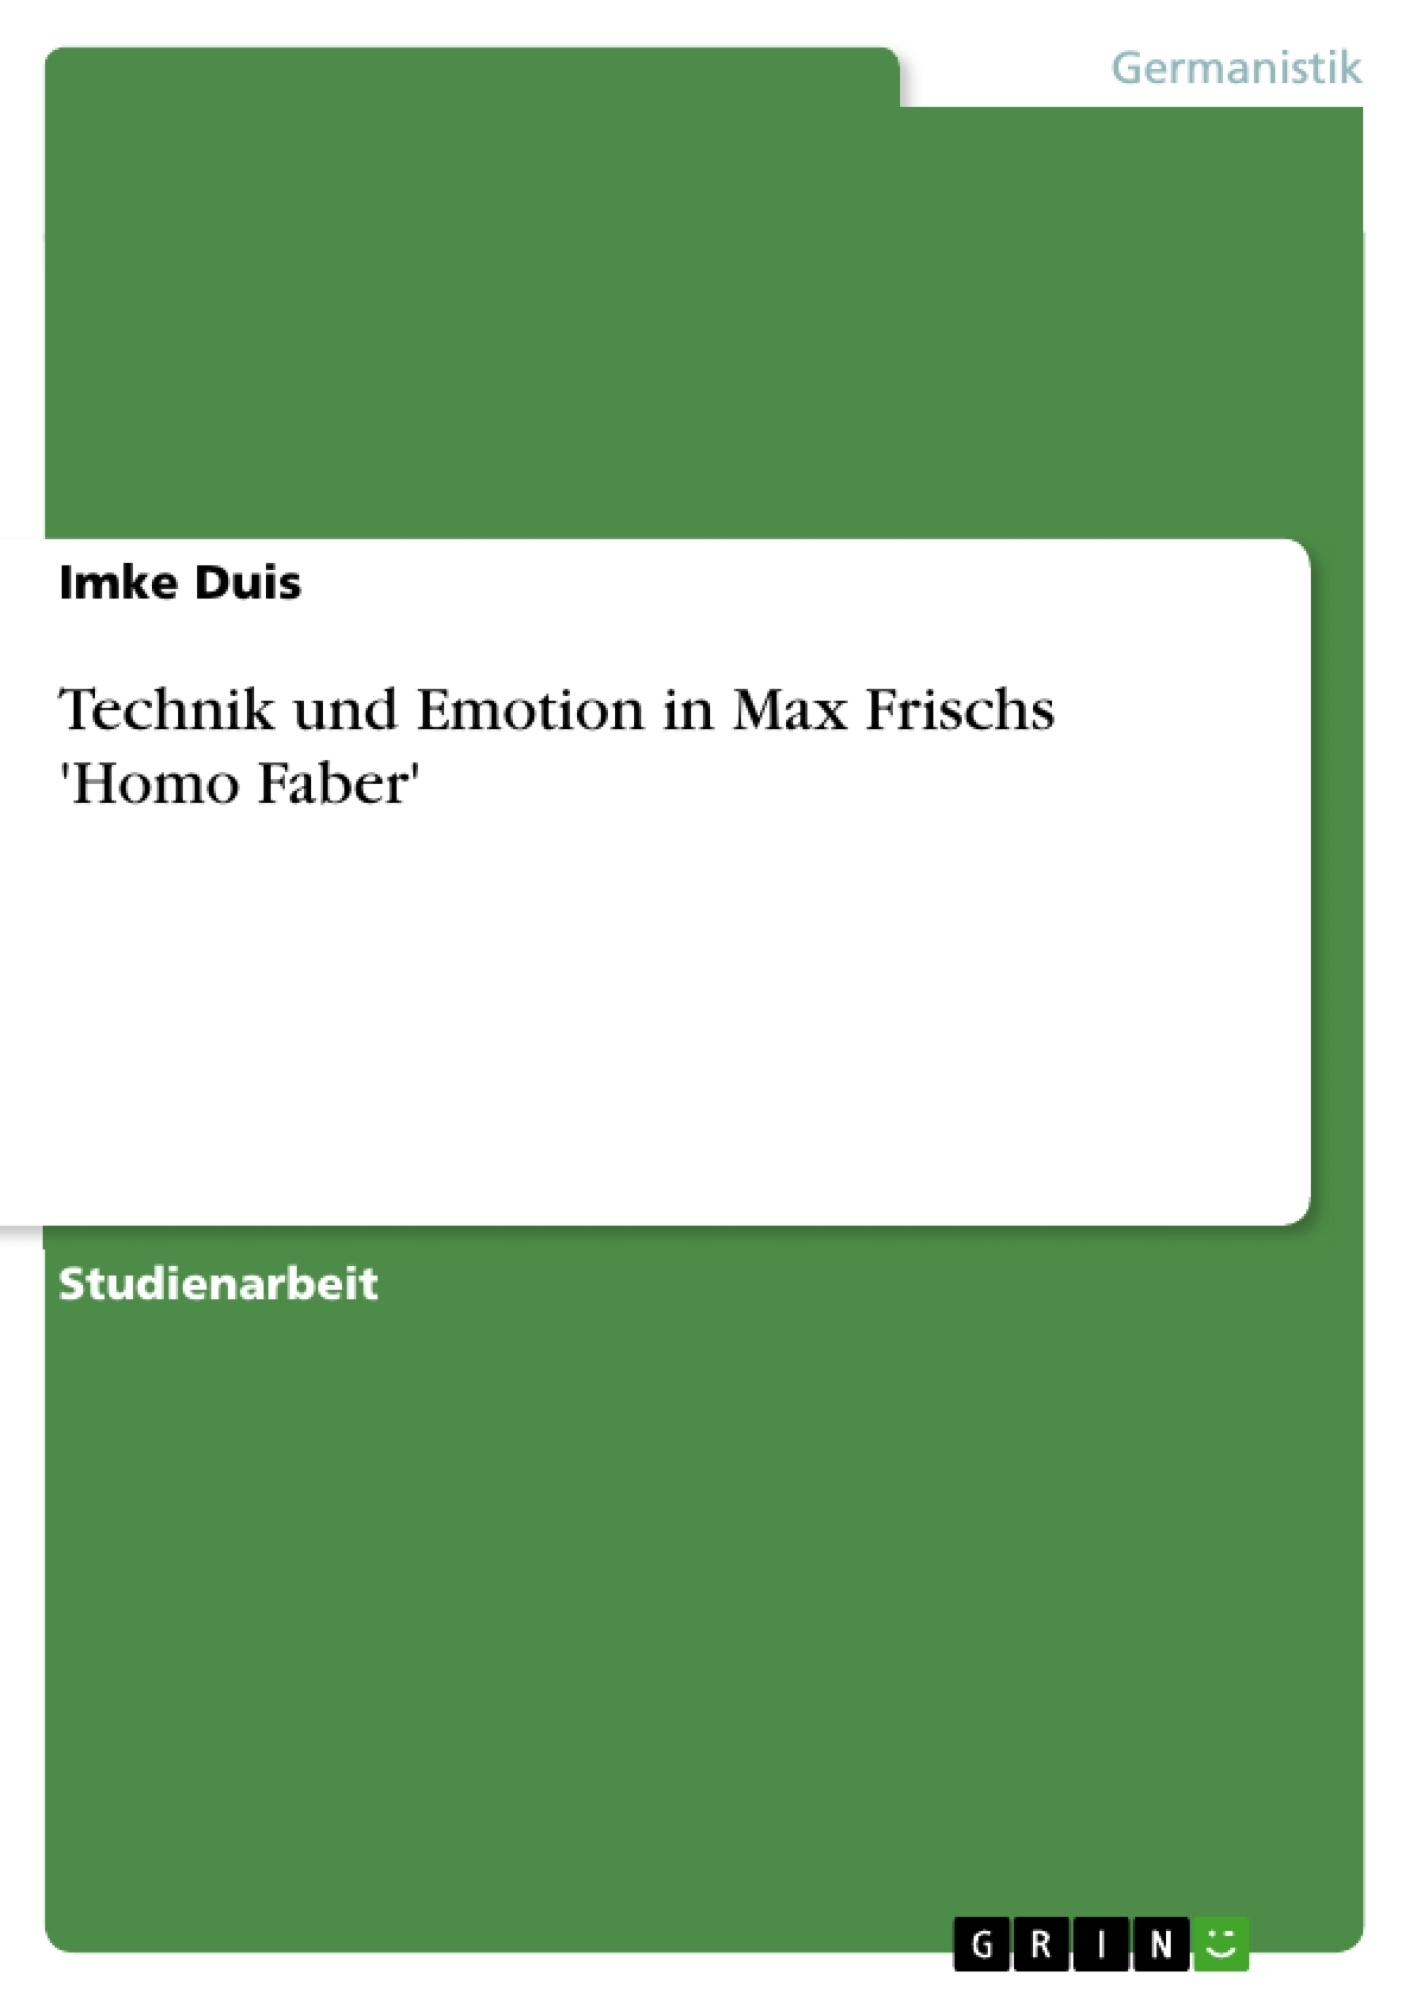 Titel: Technik und Emotion in Max Frischs 'Homo Faber'